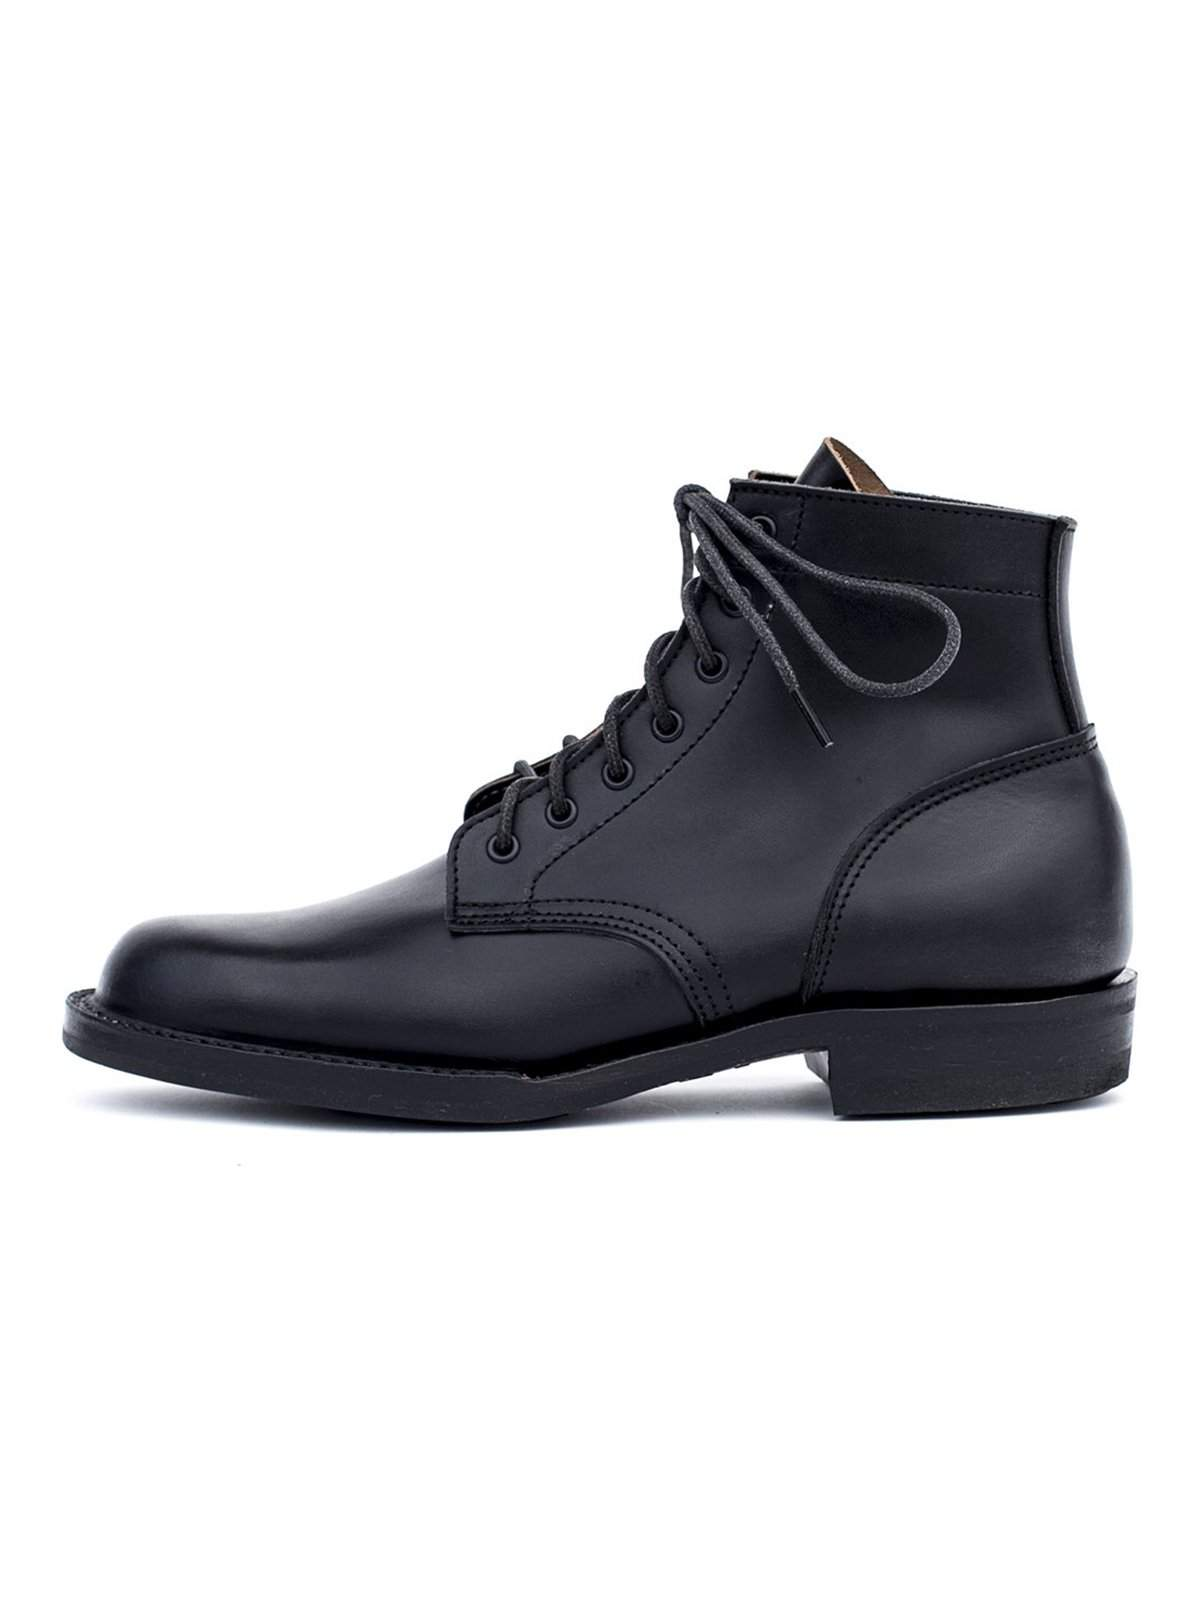 Truman Boot Co. Nero Blacked Out - MORE by Morello Indonesia